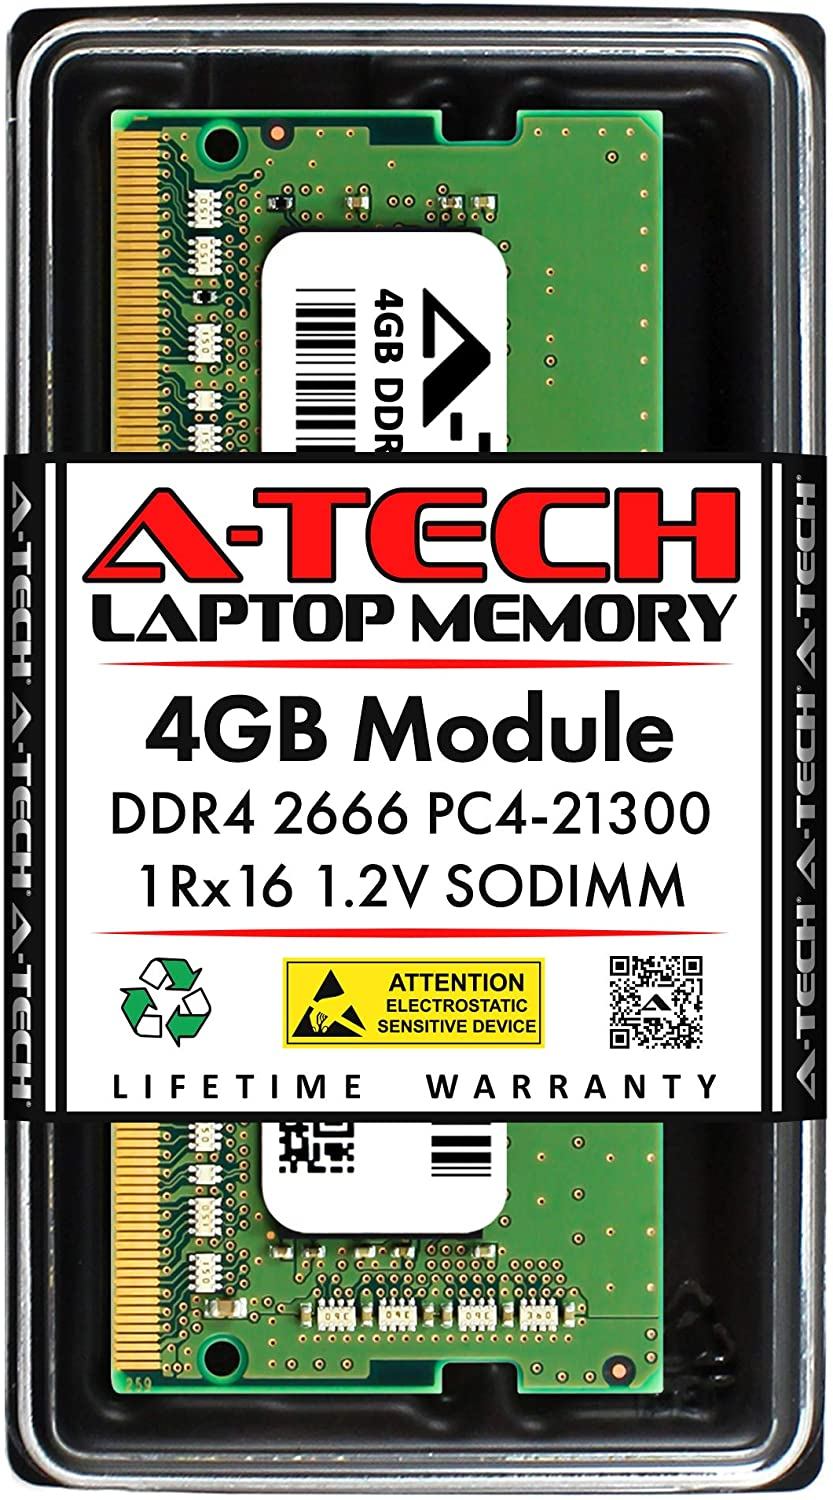 A-Tech 4GB Memory RAM for Dell OptiPlex 3050 AIO - DDR4 2666MHz PC4-21300 Non ECC SO-DIMM 1Rx16 1.2V - Single Laptop & Notebook Upgrade Module (Replacement for AA086413)